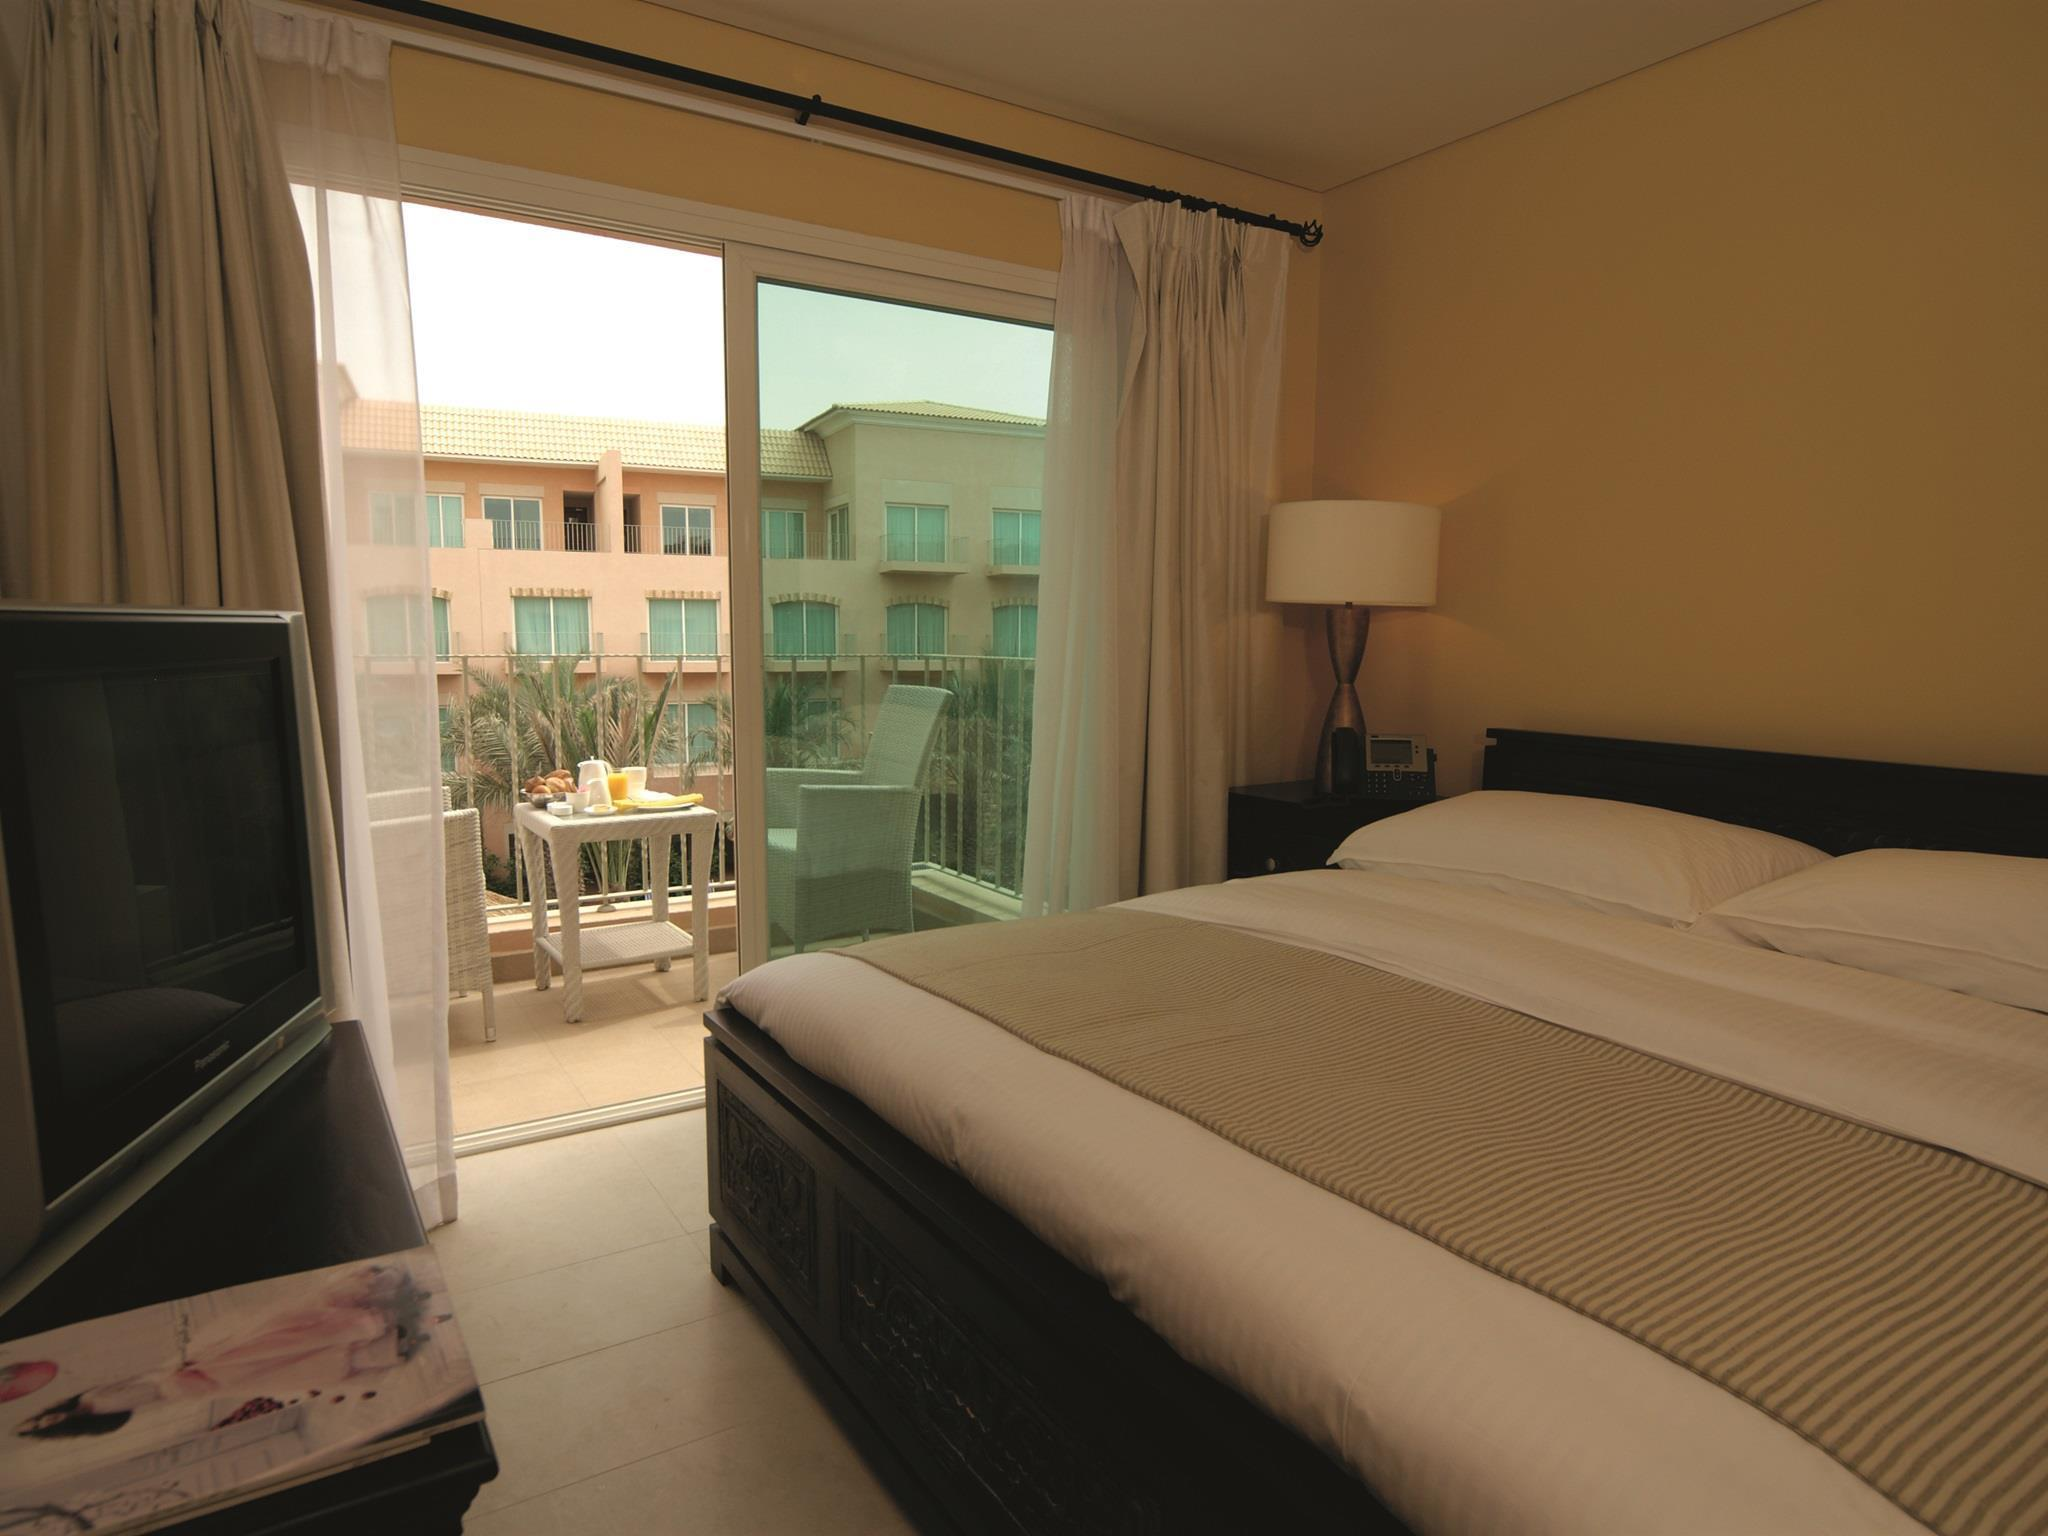 2 Slaapkamer Suite Zwembad (2 Bedroom Suite Pool)